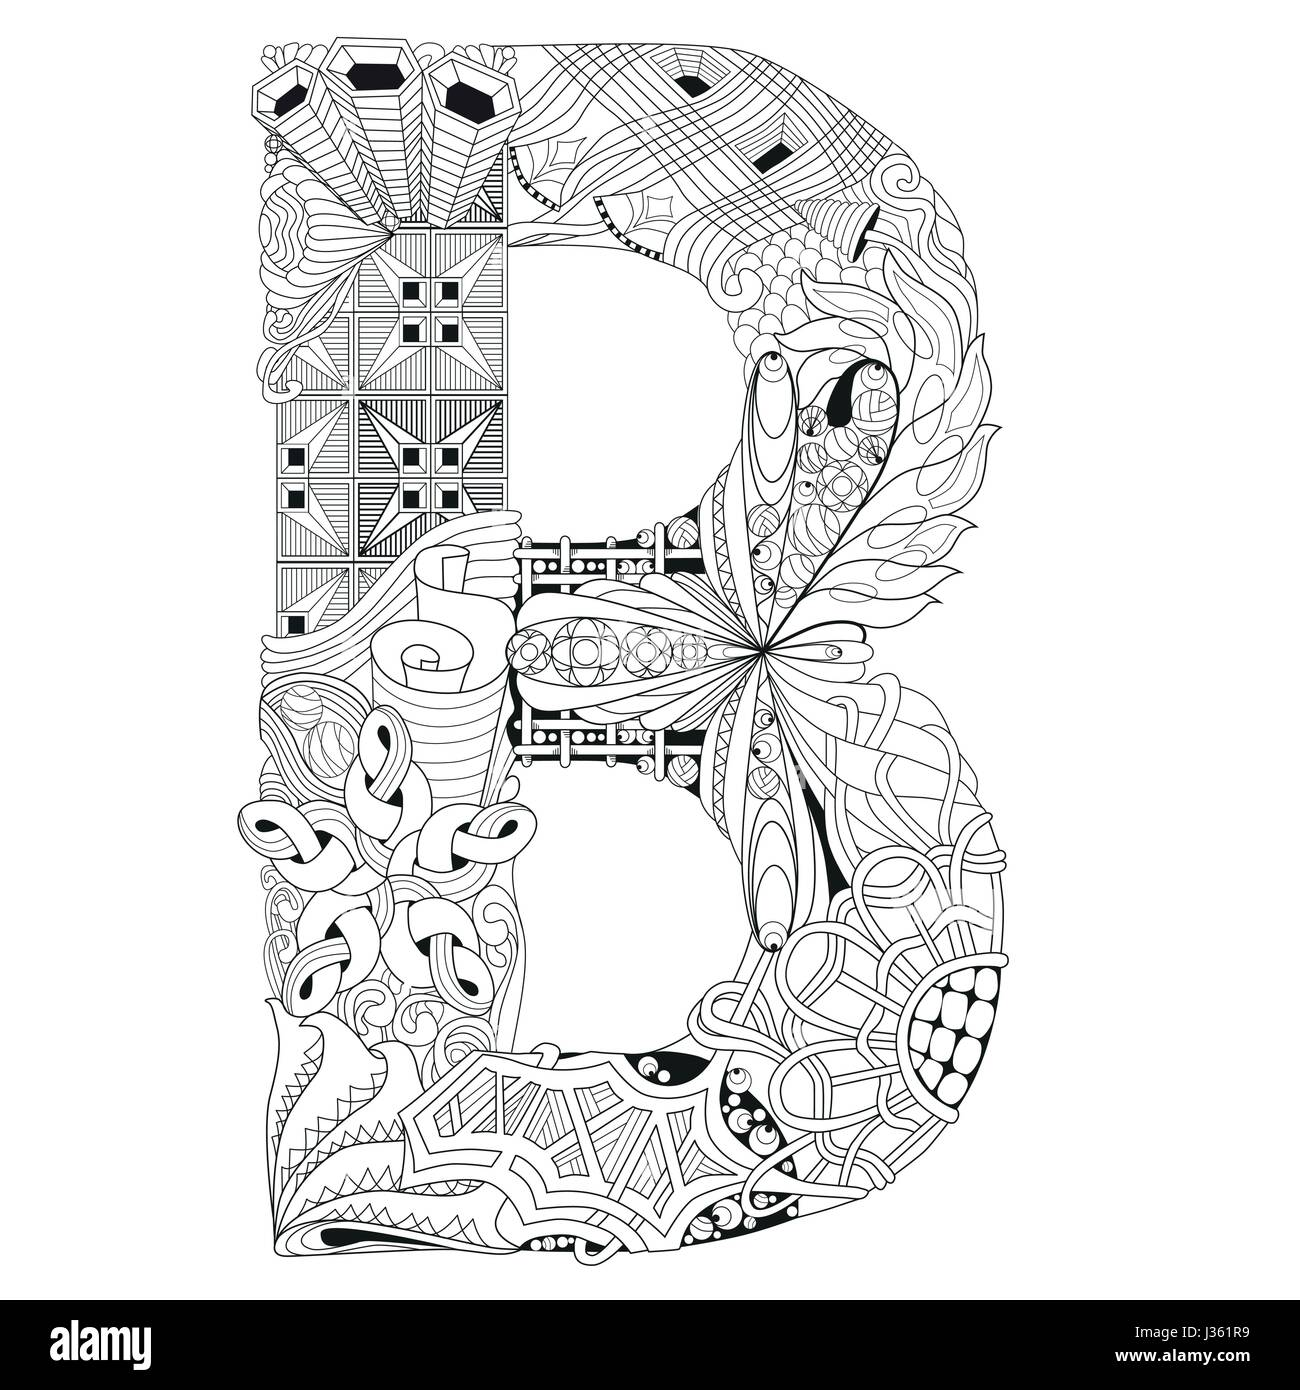 La Letra B Para Colorear Vector Zentangle Objeto Decorativo